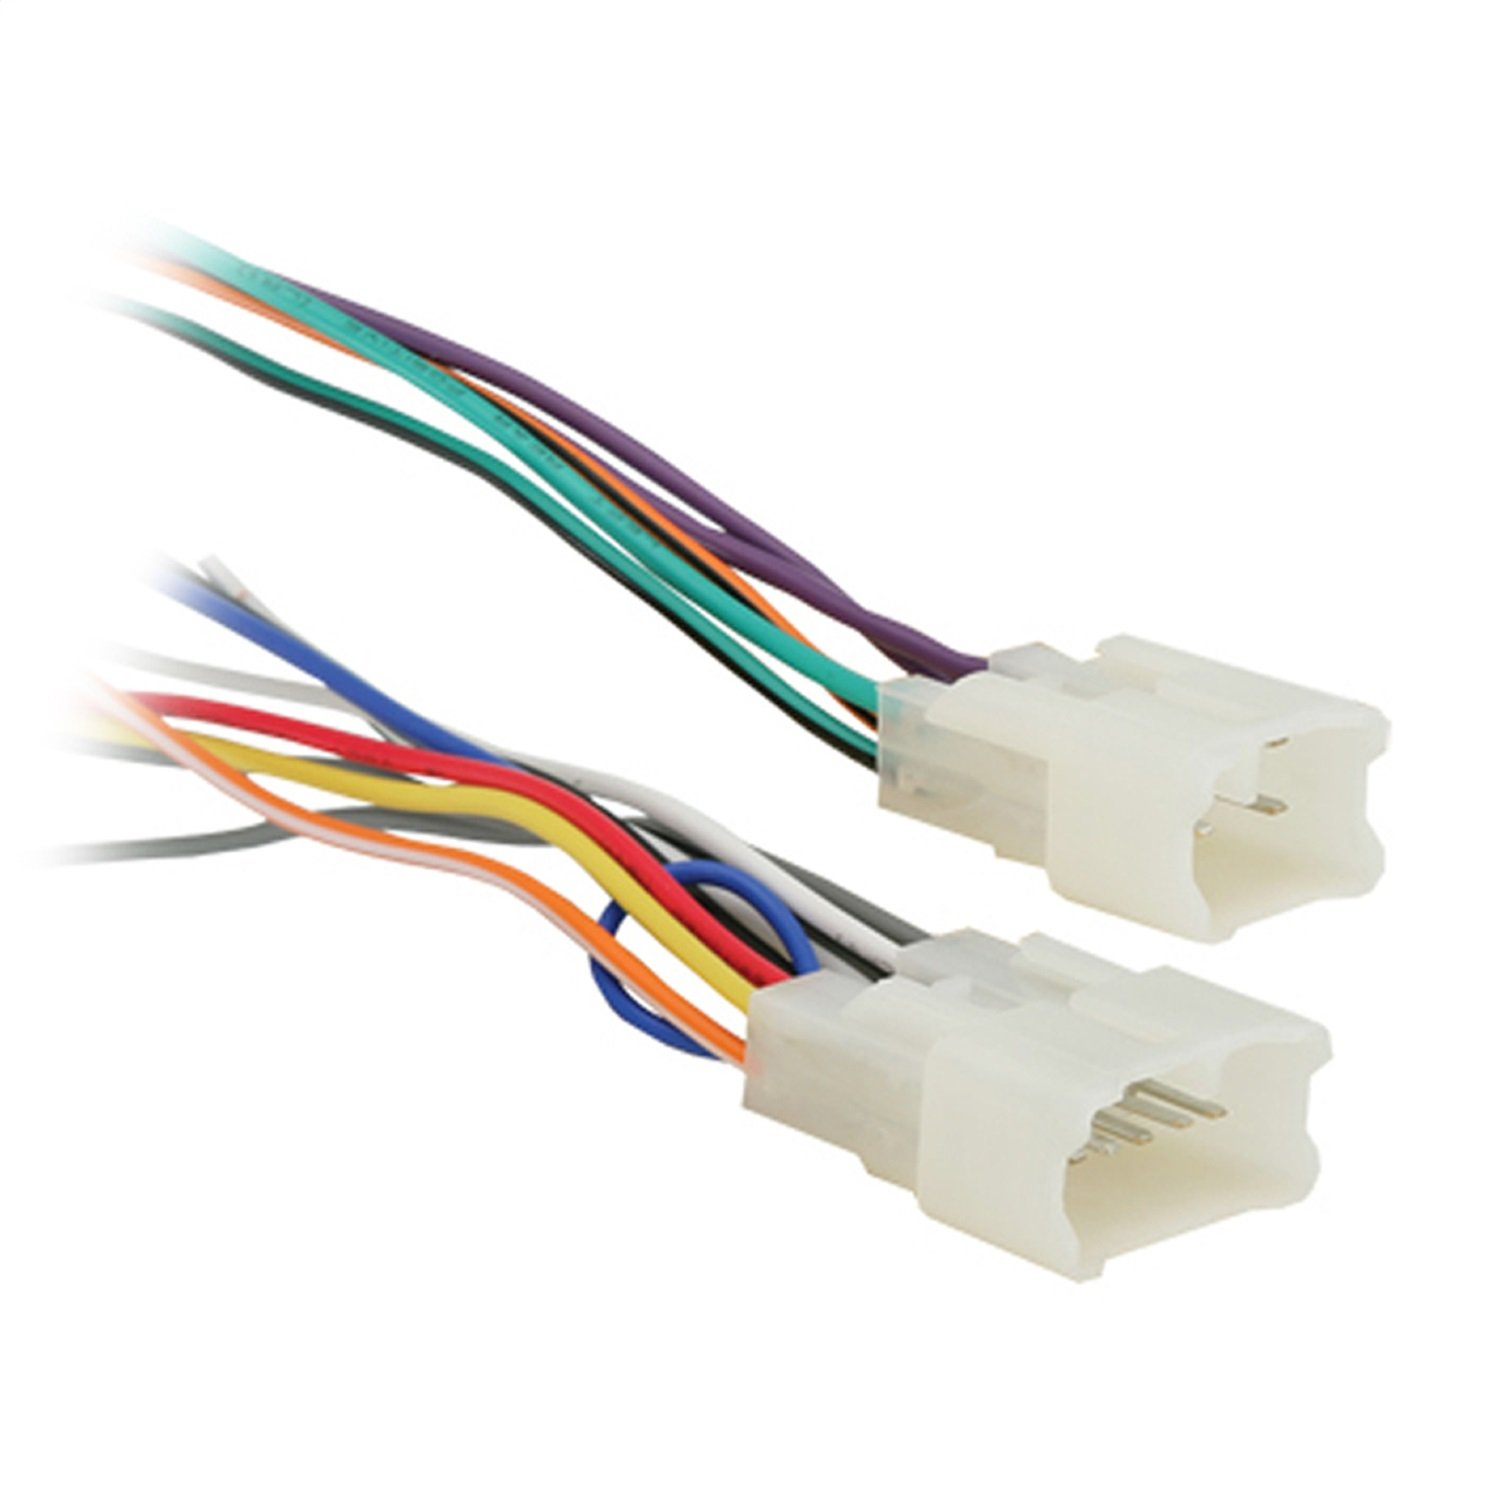 Note That Din 47100 Allows To Arrange The Wires In Pairs You Will